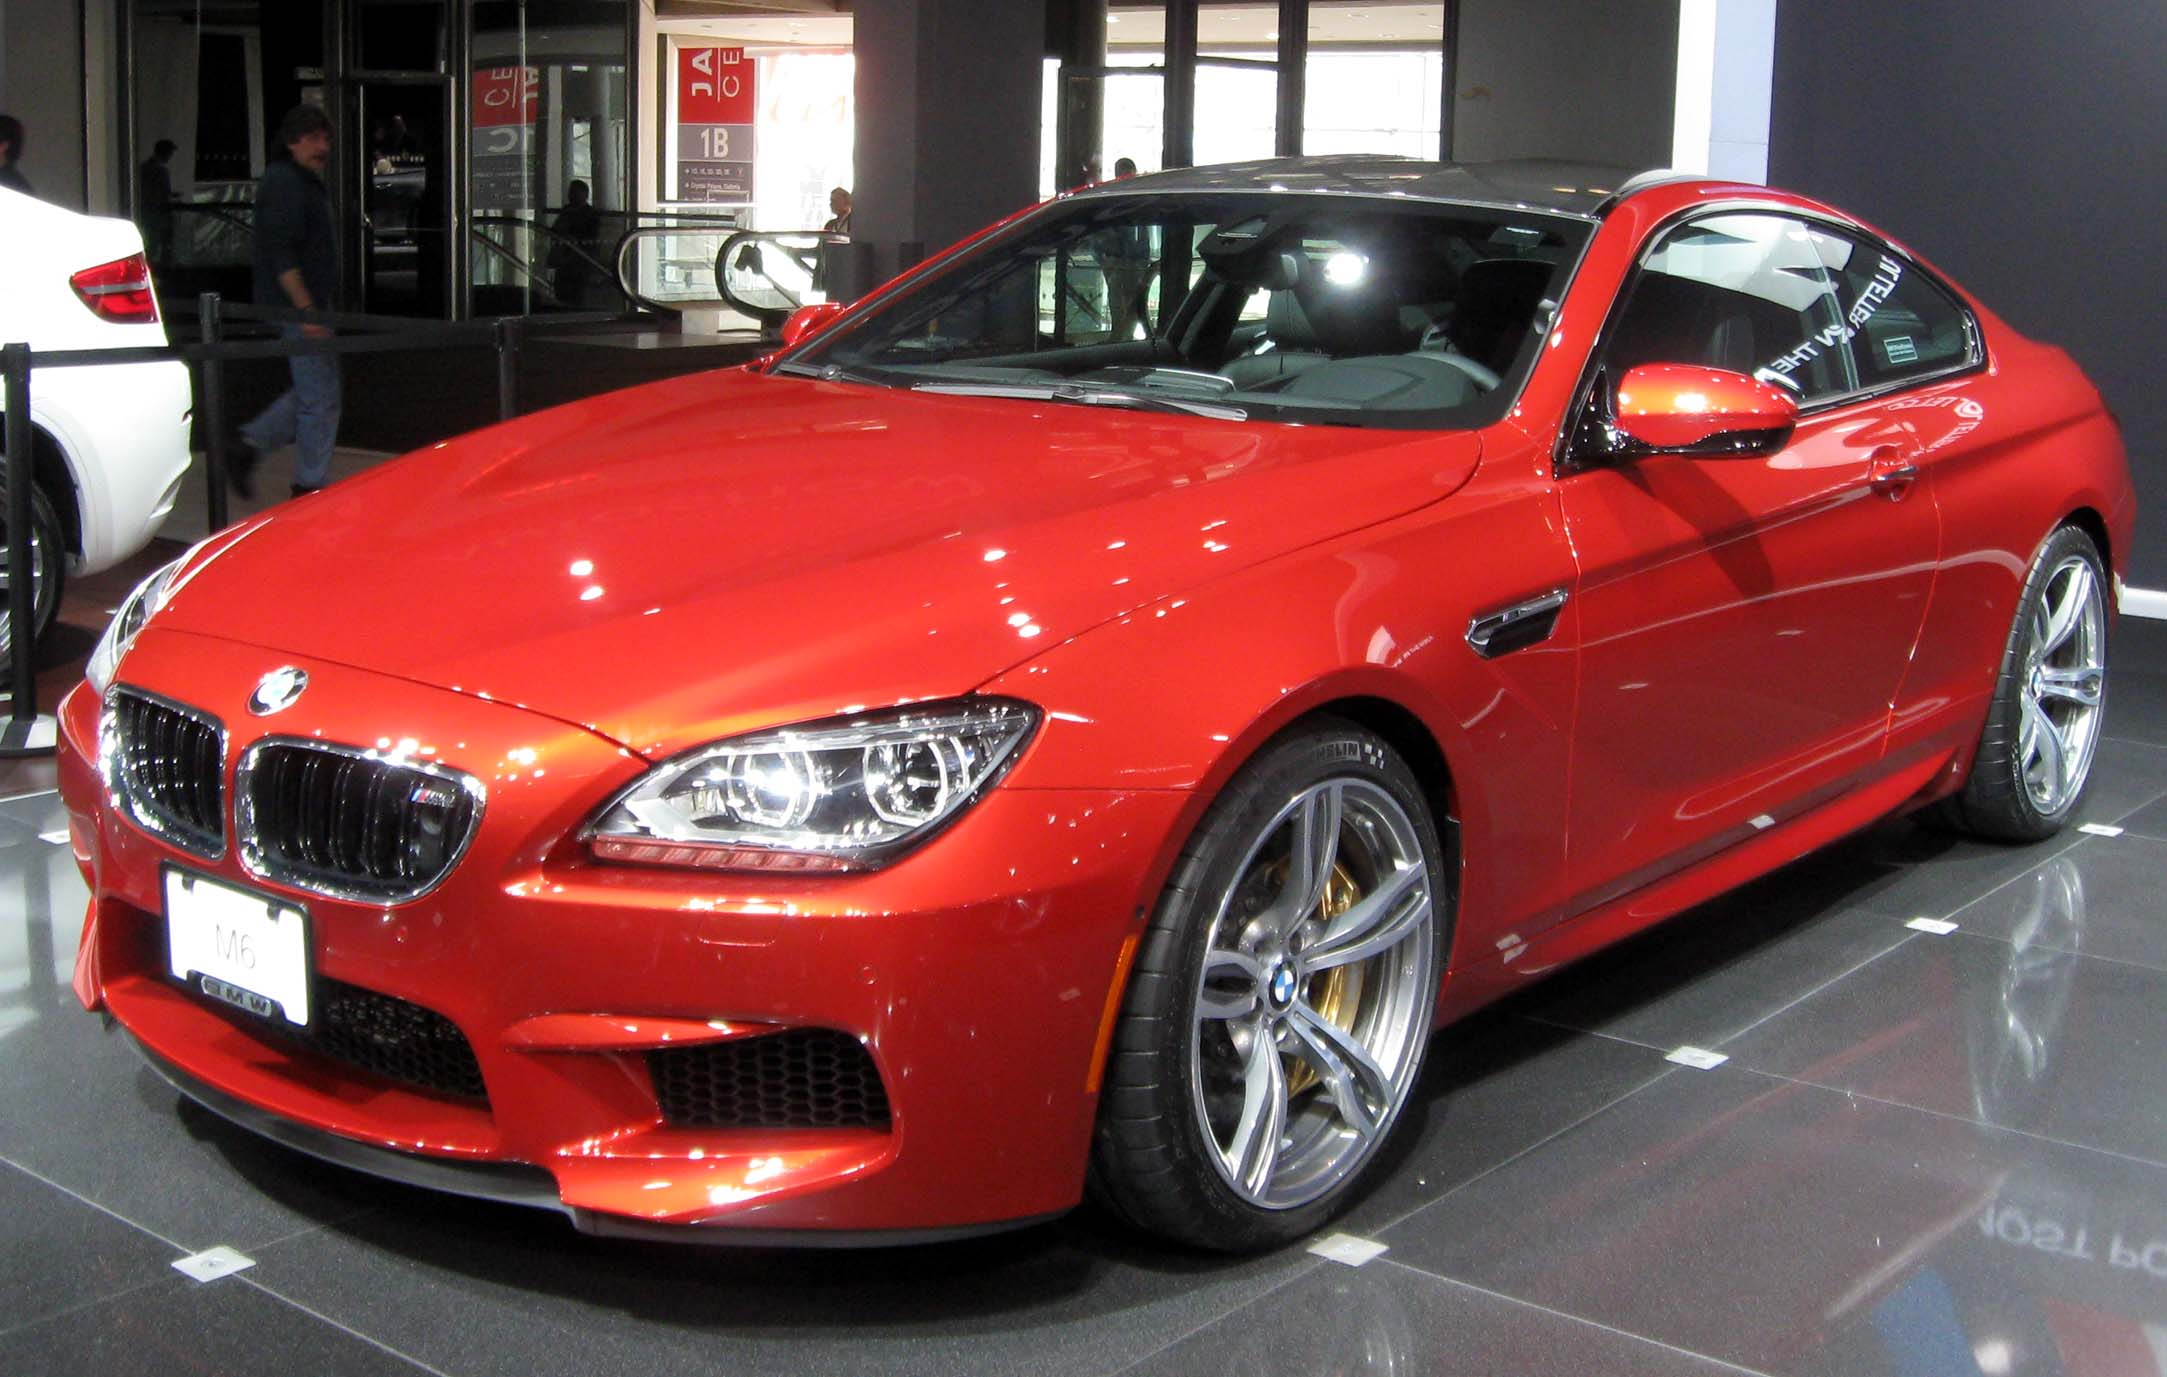 BMW M6 Auto & Car Wallpapers HD | Iphone | Android| Desktop 1 Wallpaper